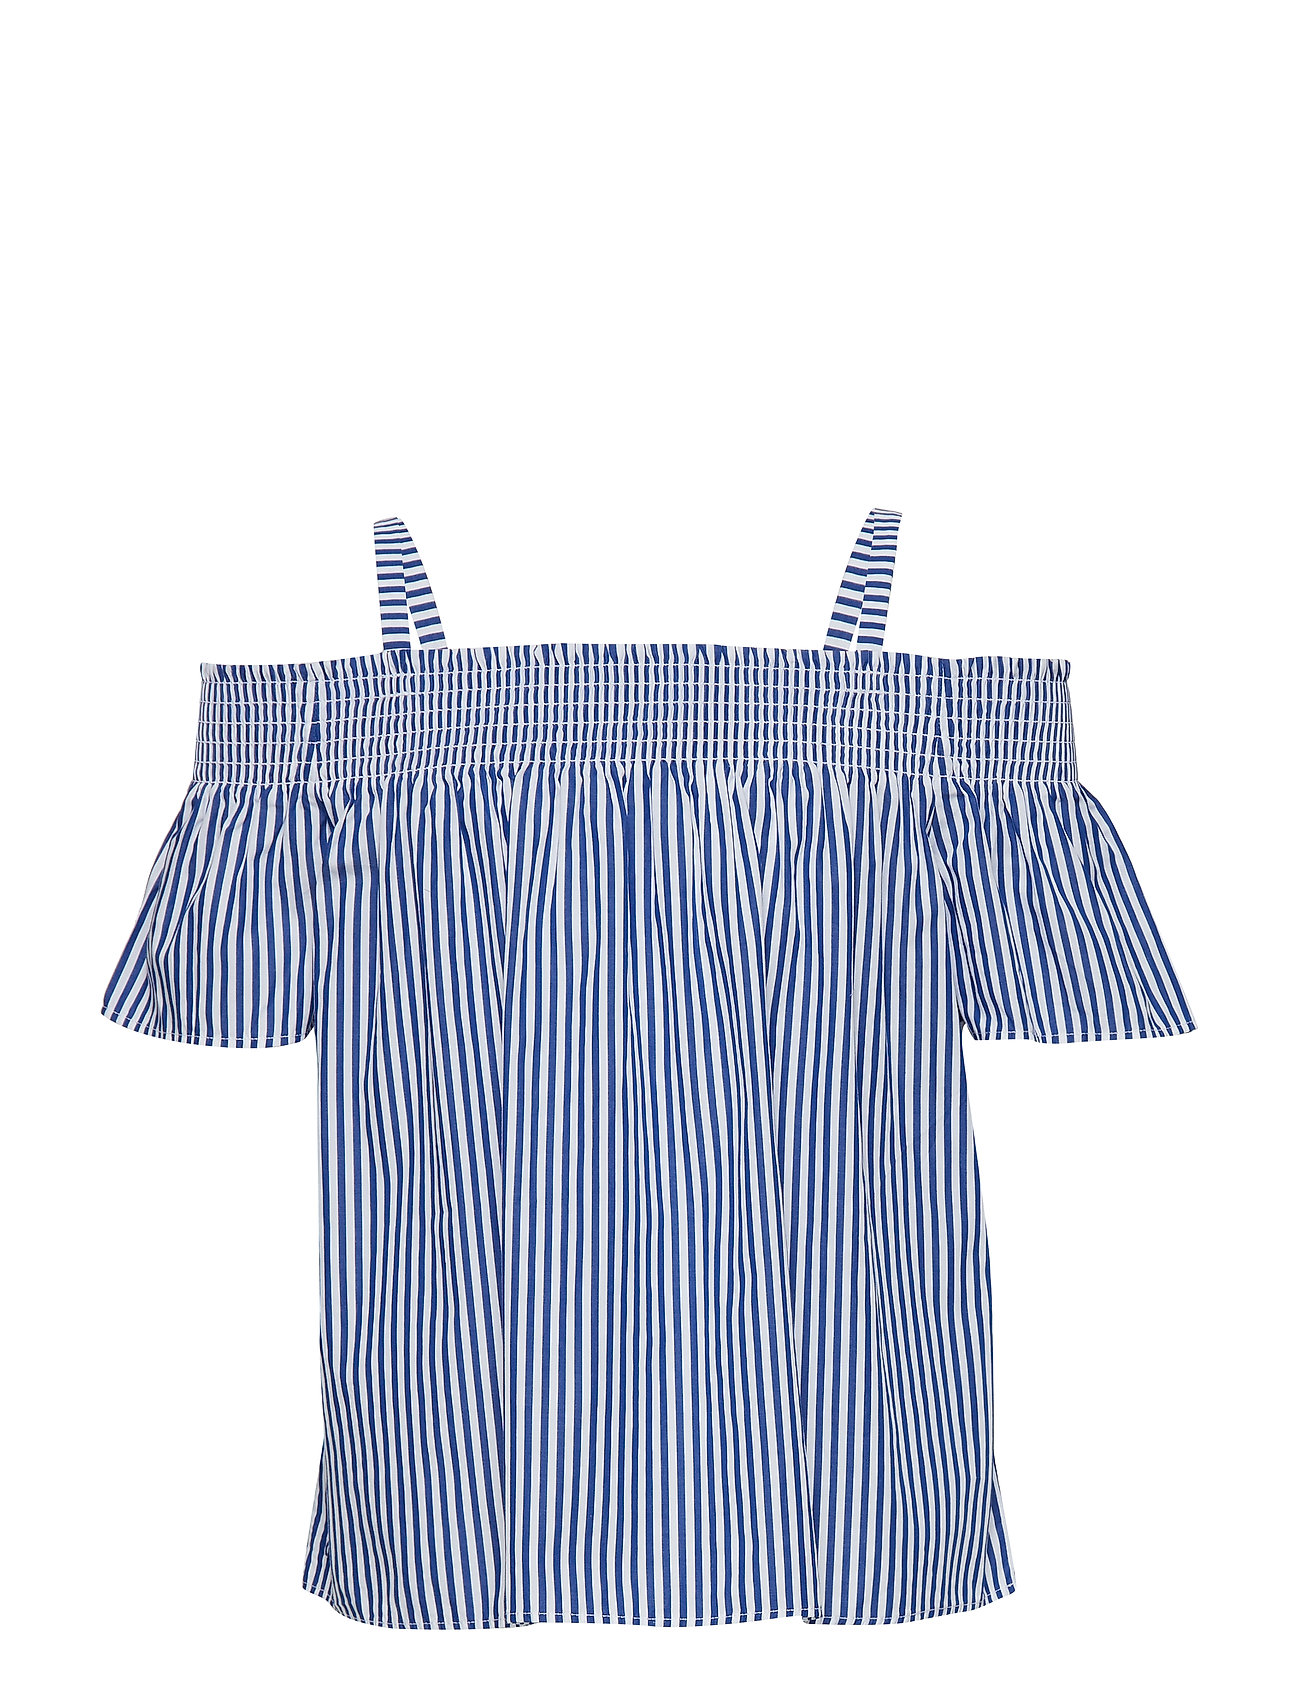 Ralph Lauren Kids Cotton Off-the-Shoulder Top - ACTIVE ROYAL/WHIT